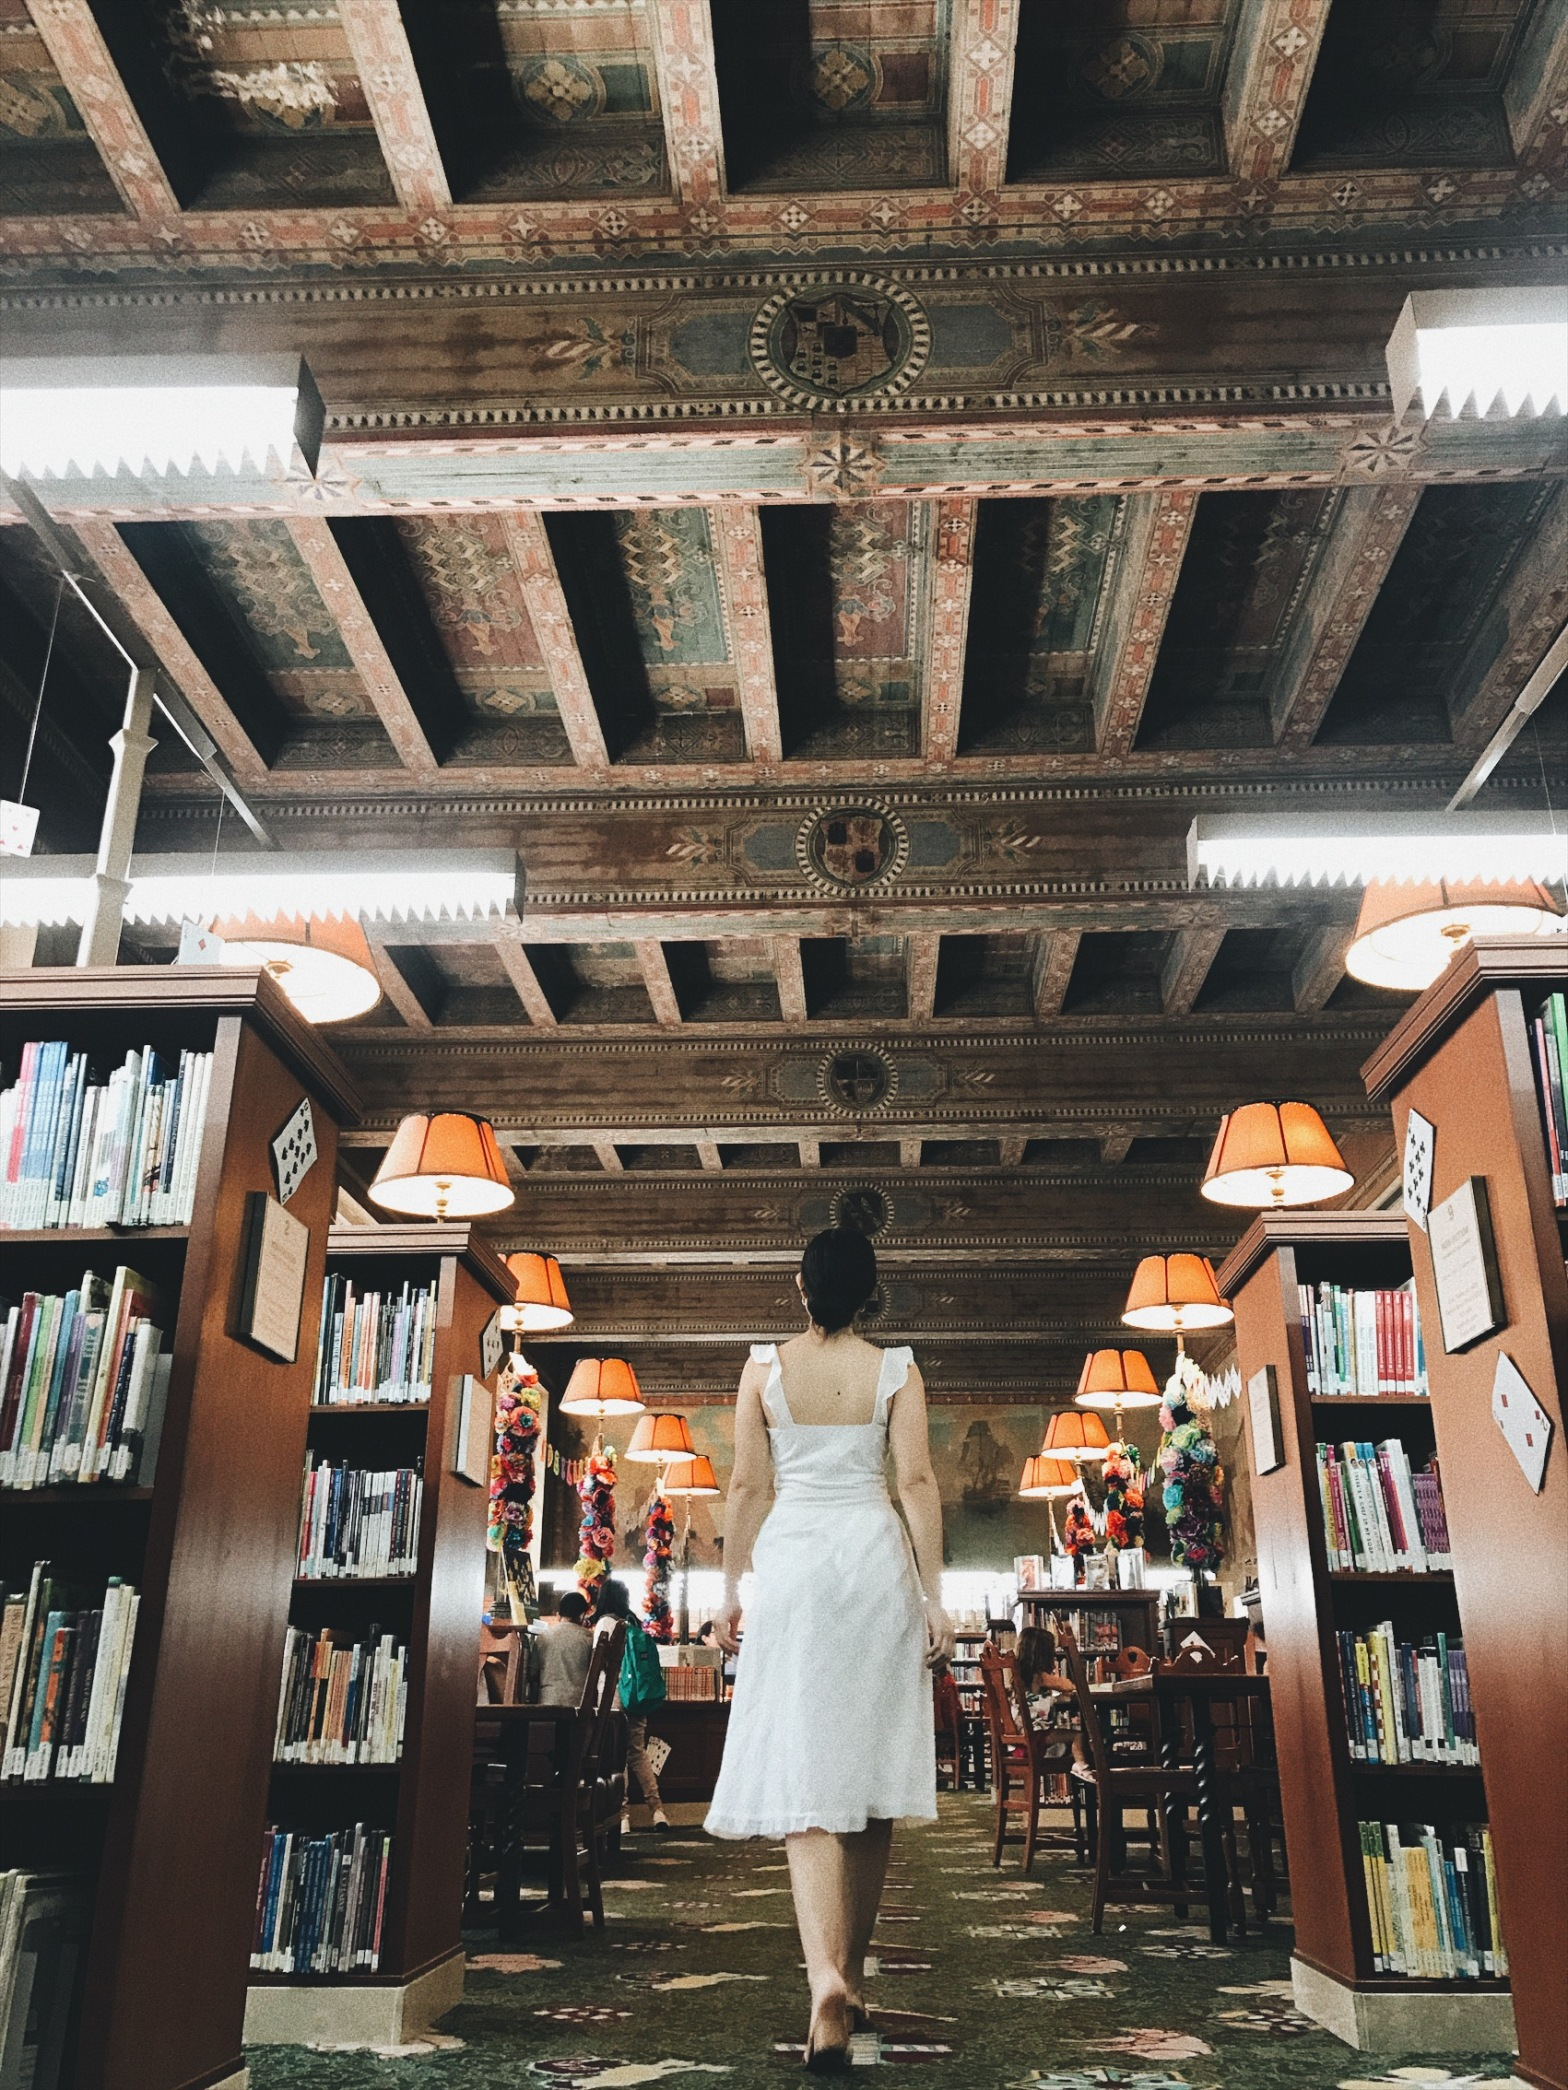 fashion blogger, style blogger, bibliophile, ootd, lookbook, white dress, library, top libraries, books, bookish, Los Angeles, DTLA Los Angeles Central Library, Downtown Los Angeles